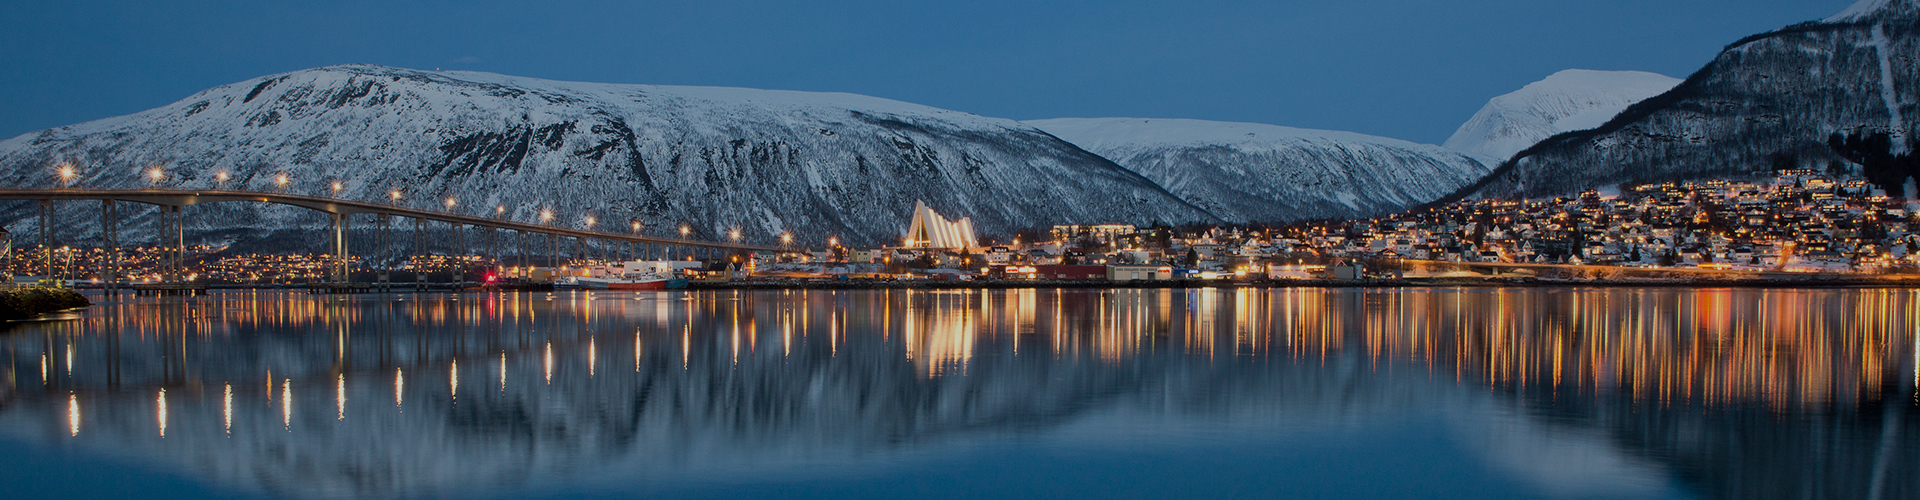 Landmark photograph of Norway